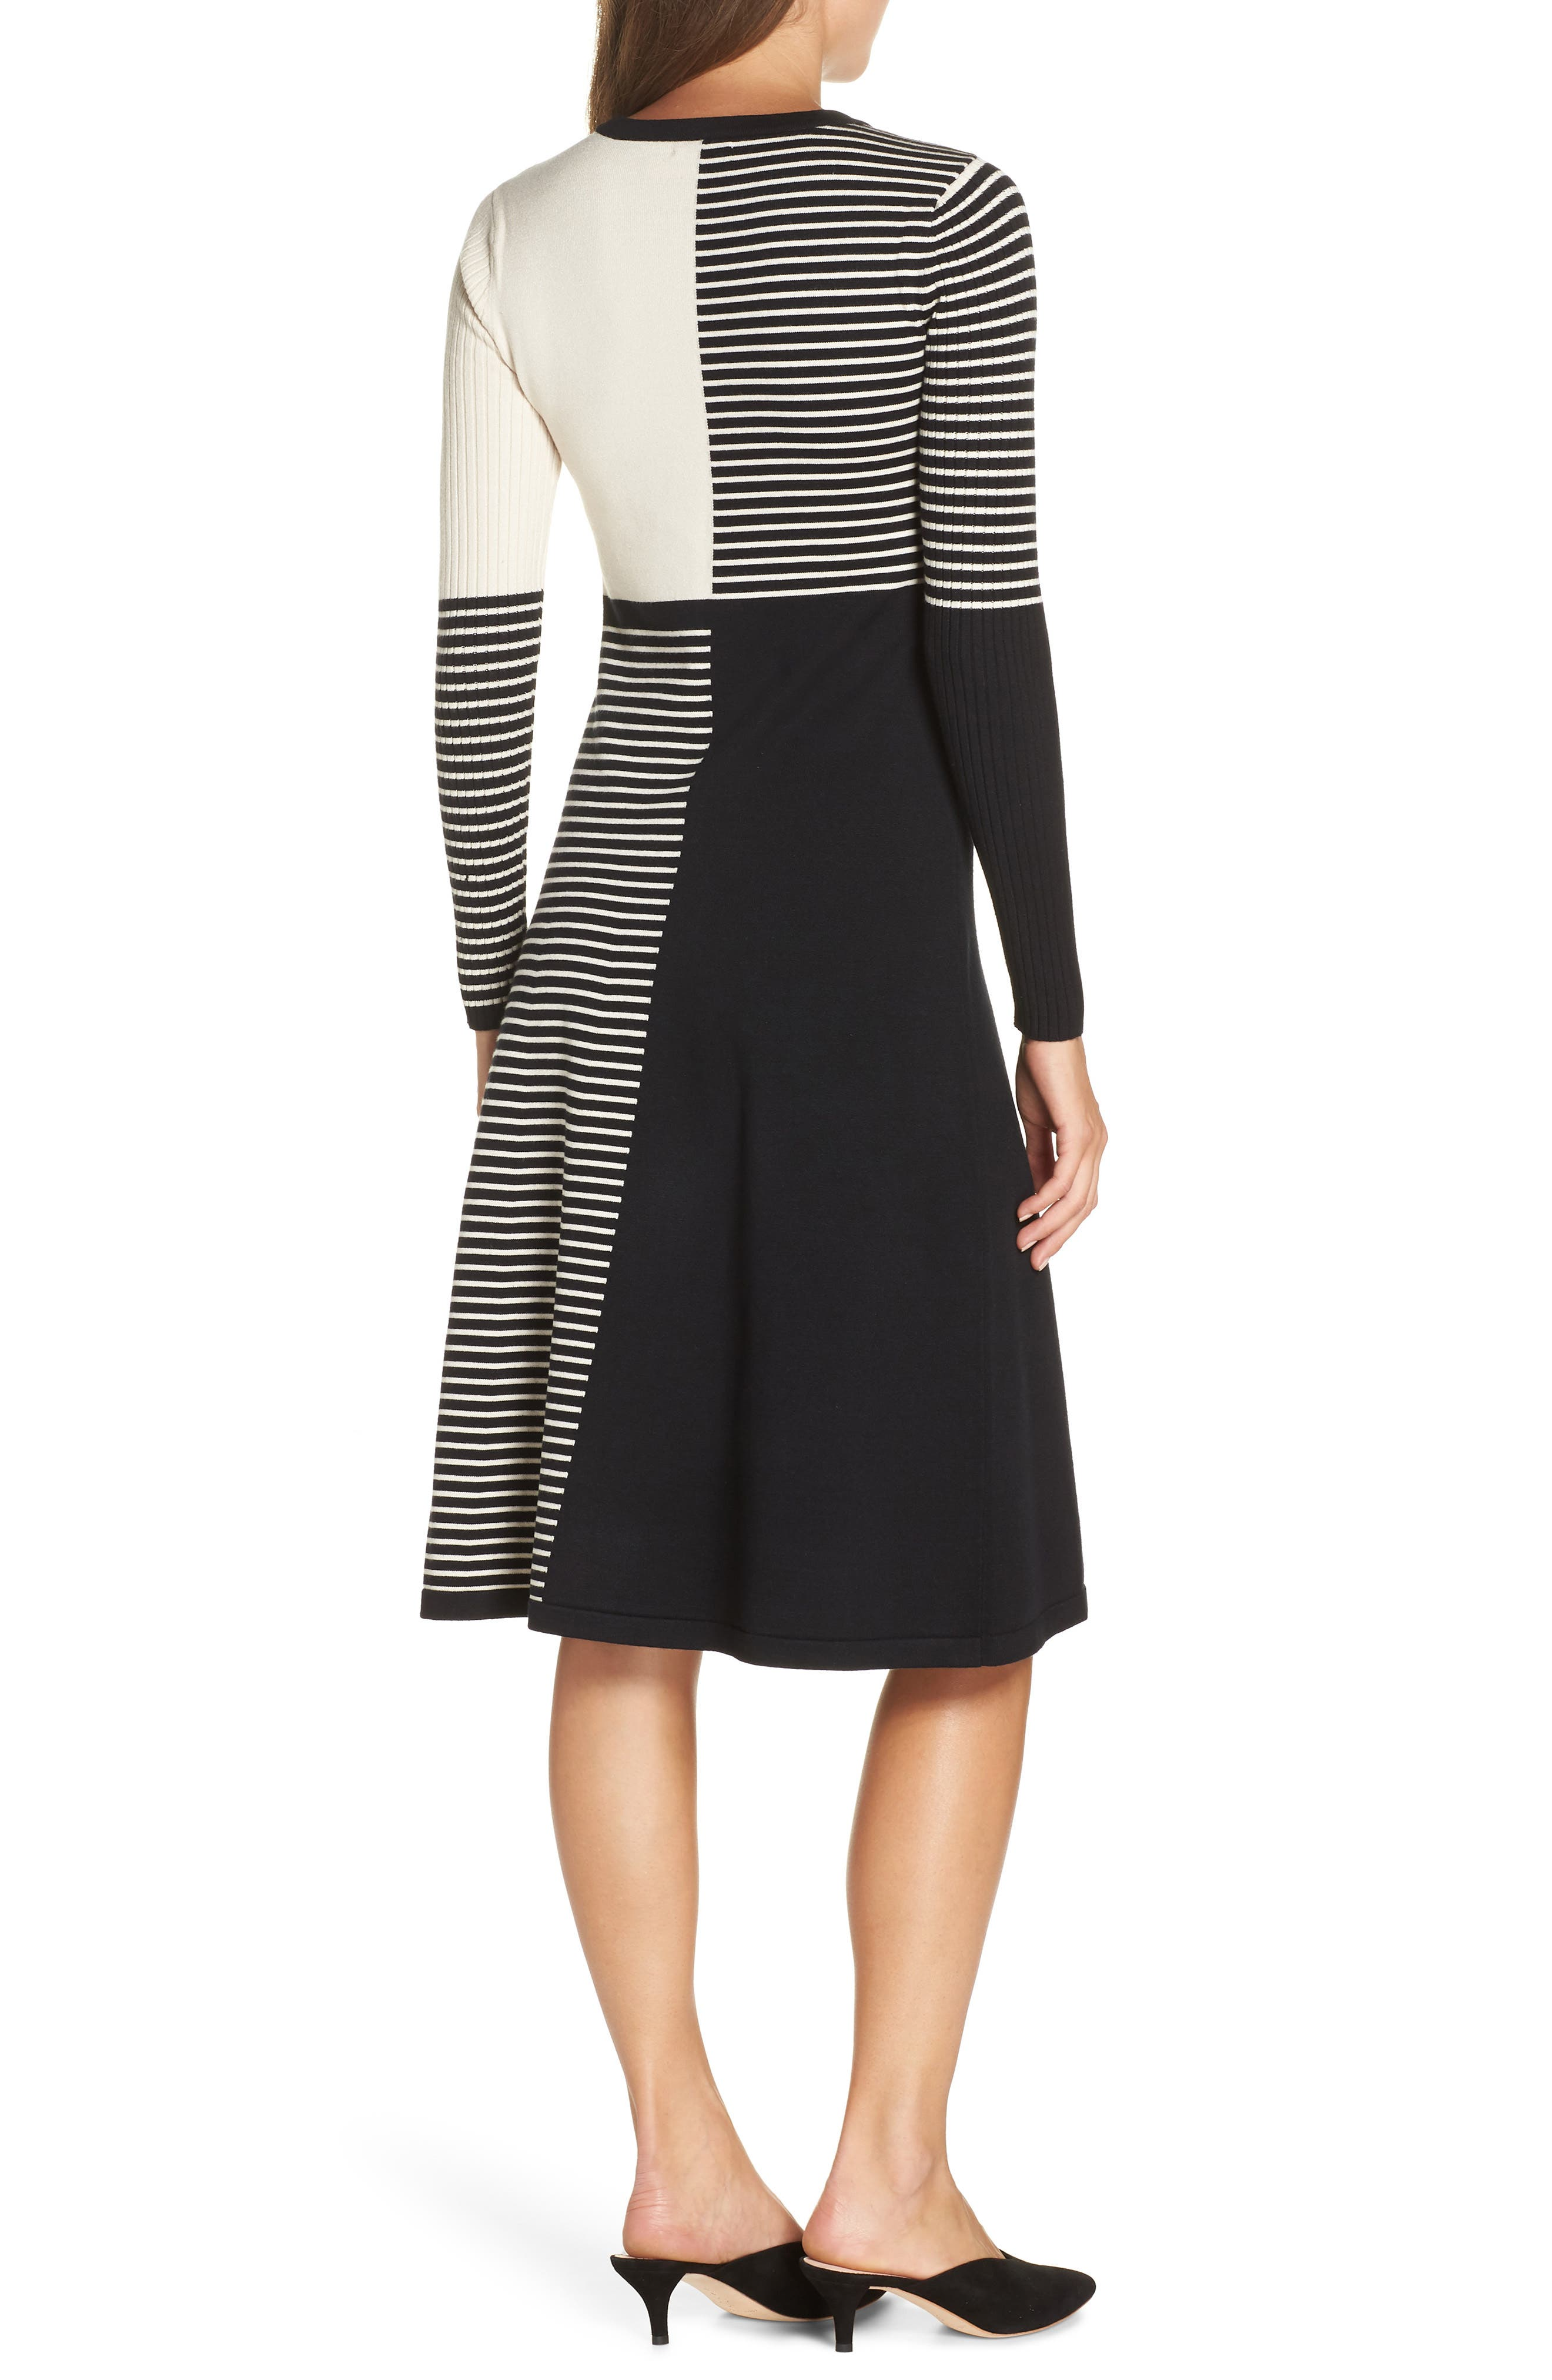 ELIZA J, Placed Stripe Sweater Dress, Alternate thumbnail 2, color, 900